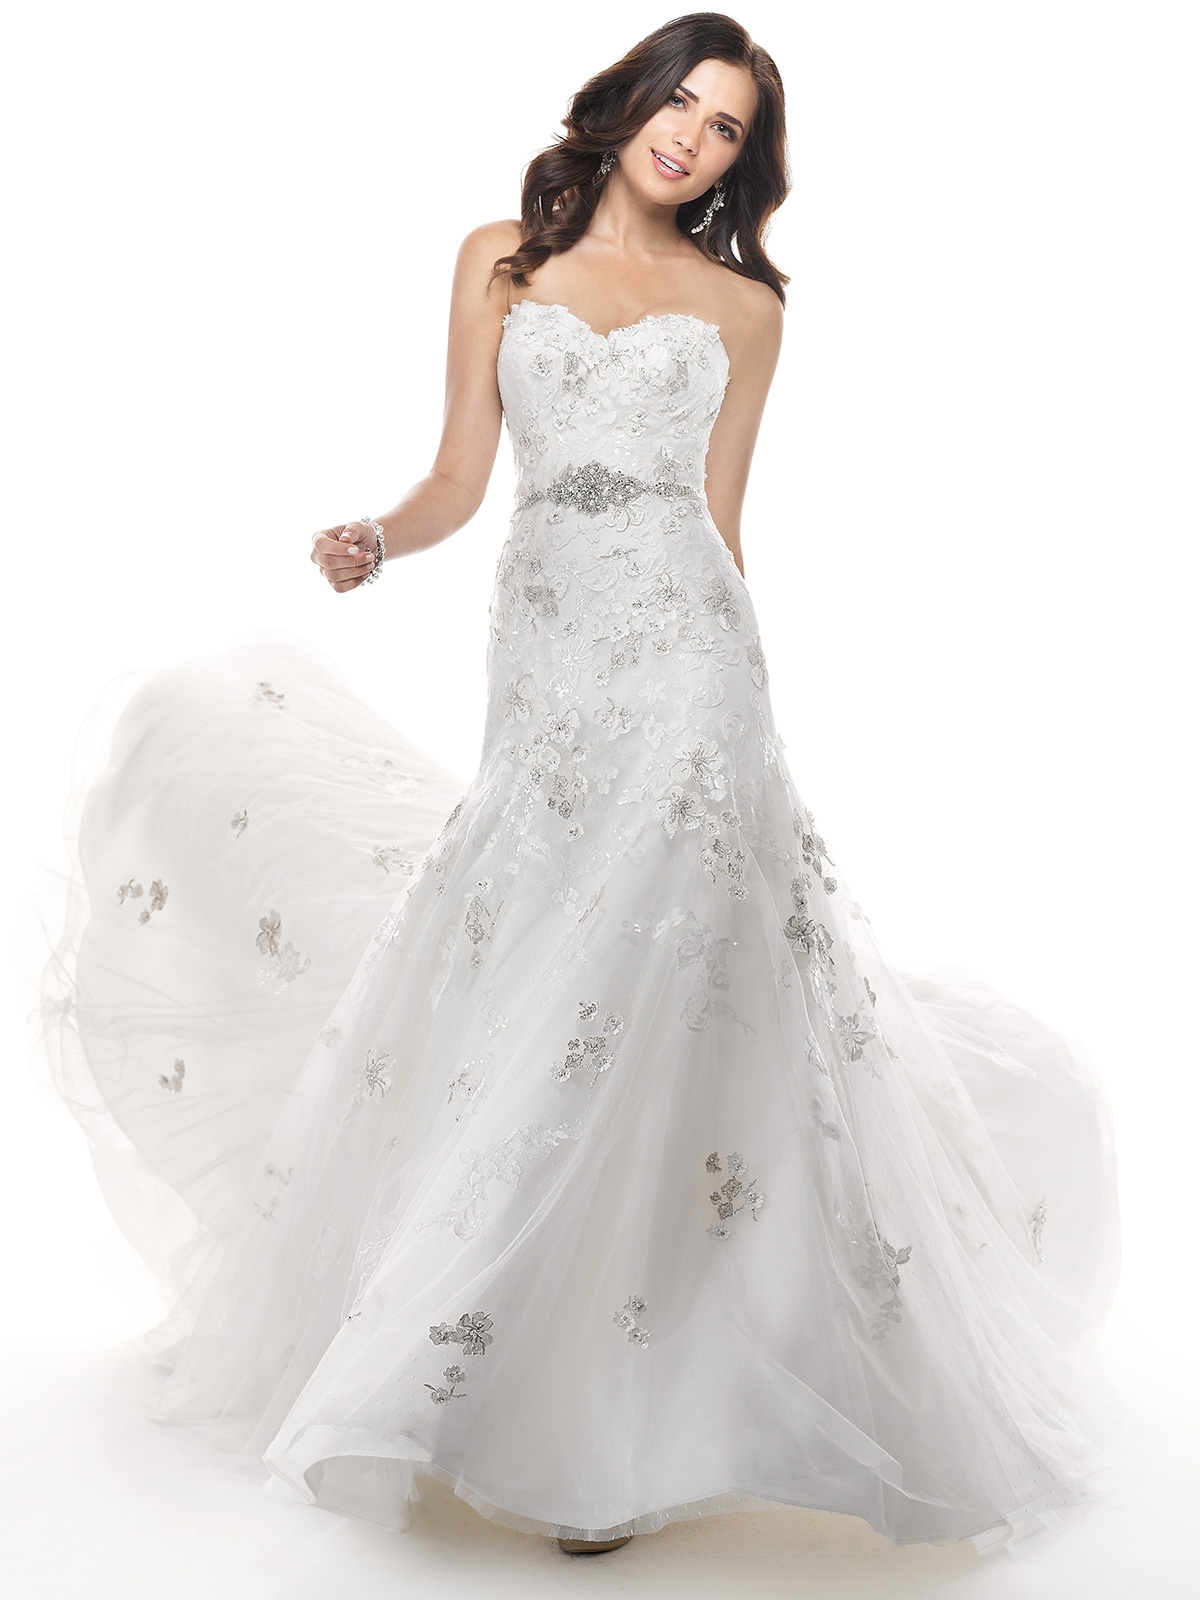 Janice Sung Wedding Sweetheart Beaded Lace Bridal Gown Maggie Sottero Delores